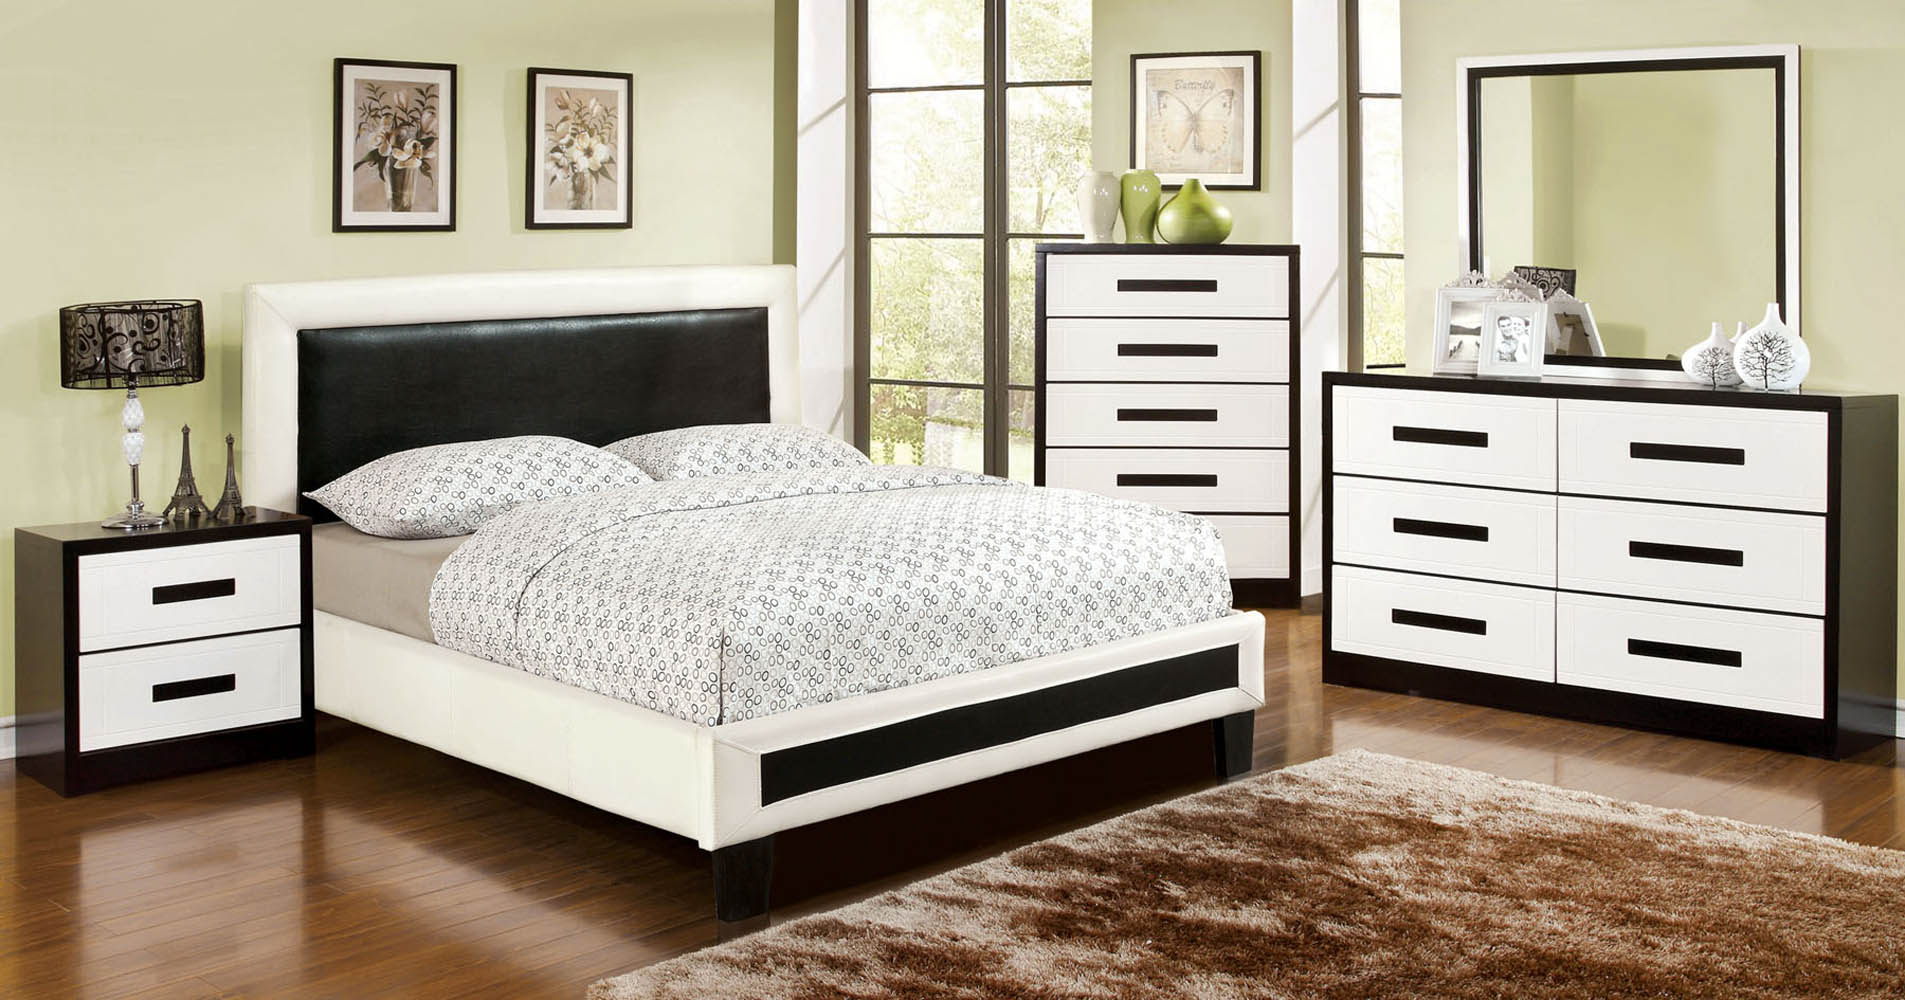 european style queen bed frame